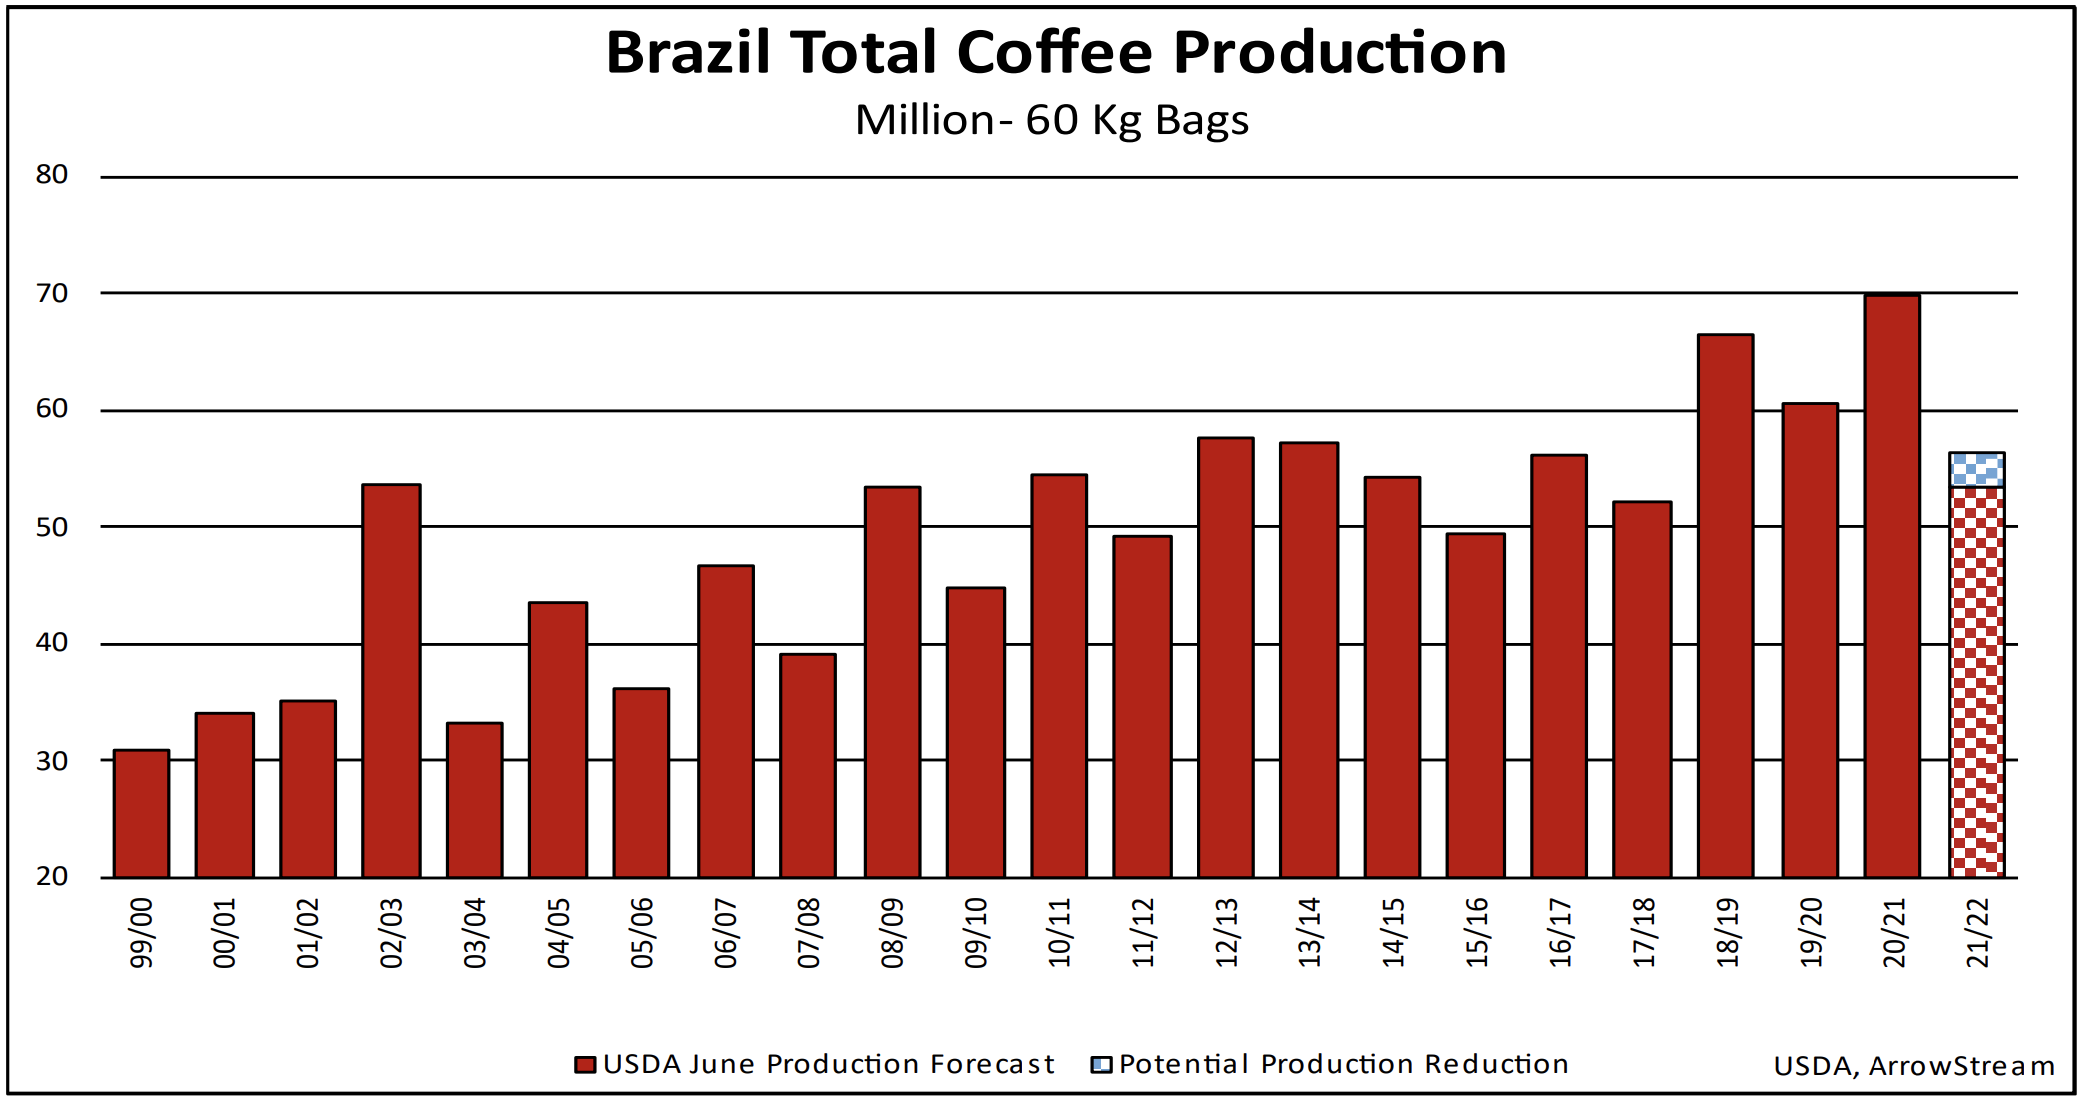 Brazil Total Coffee Production from ArrowStream